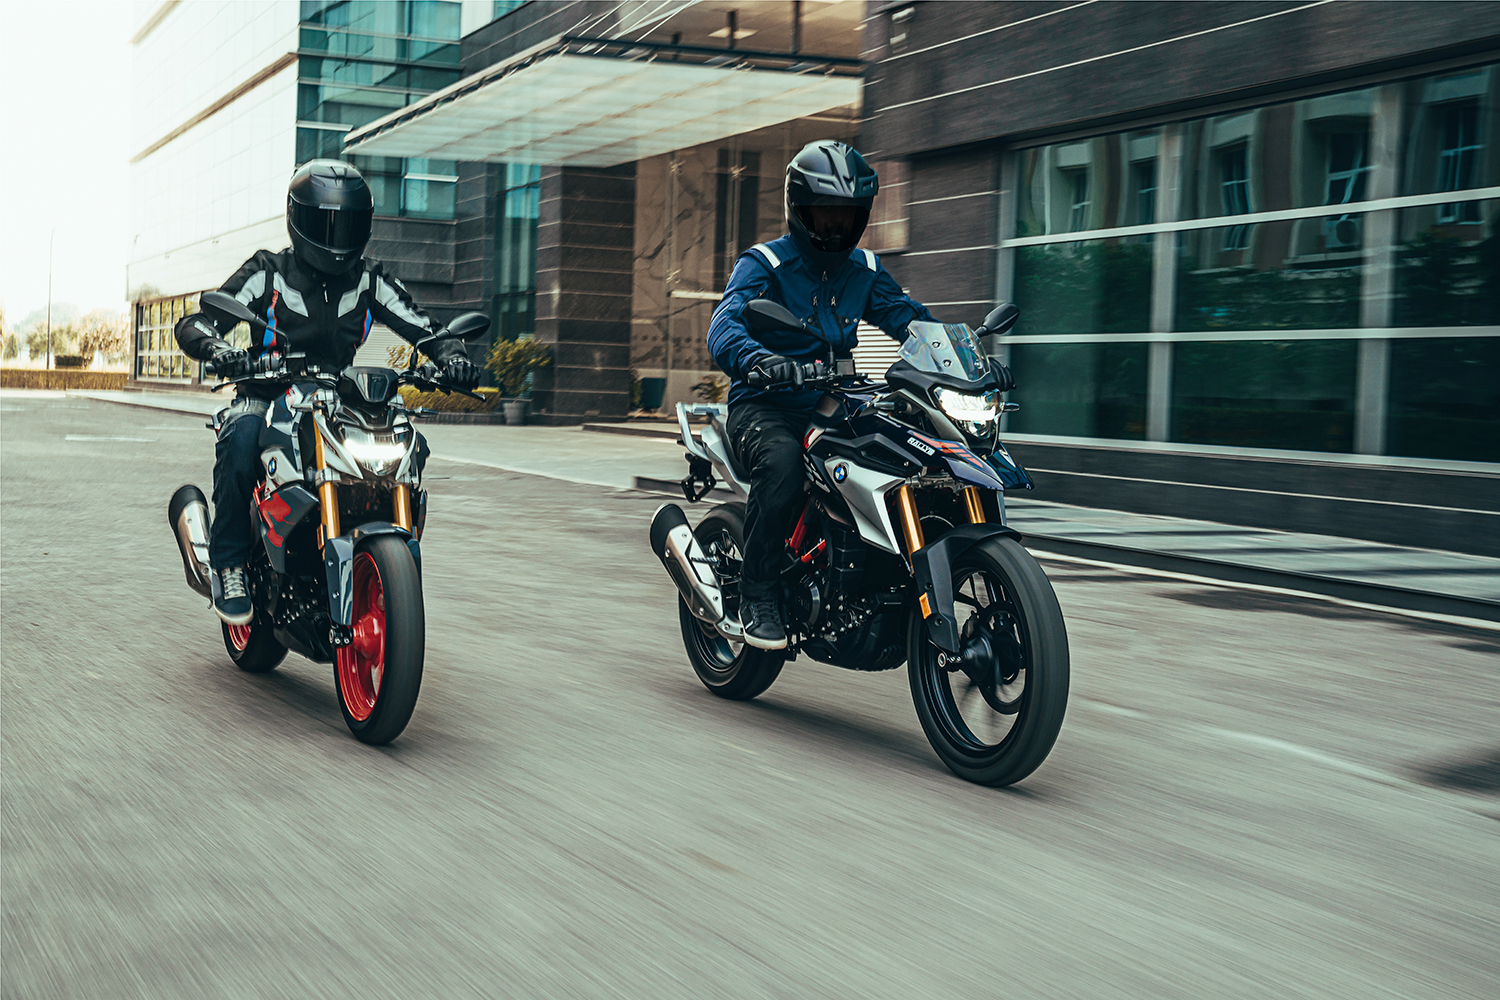 2020 BMW G 310 R and BMW G 310 GS launched